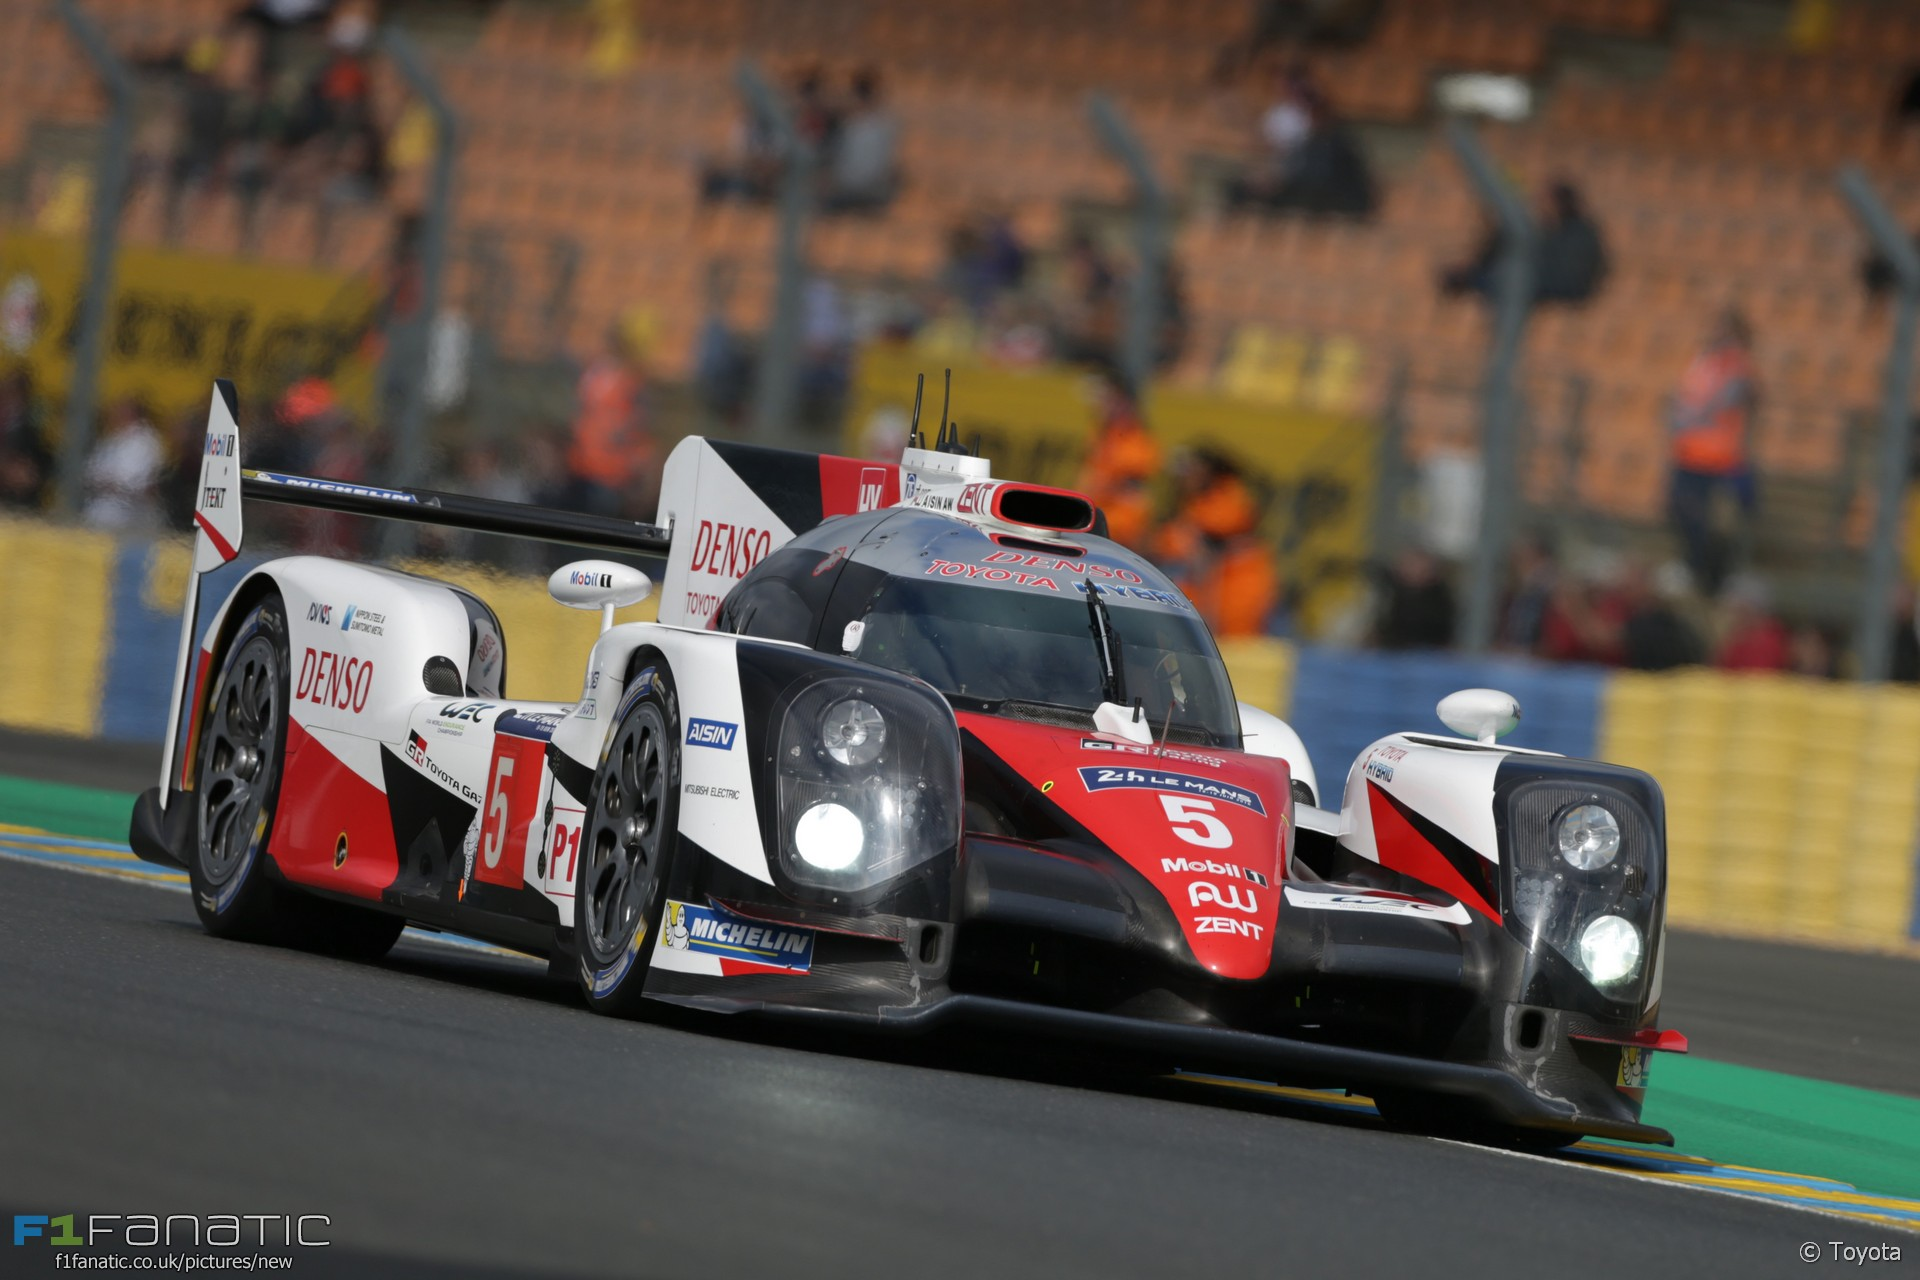 toyota le mans 24 hours 2016 f1 fanatic. Black Bedroom Furniture Sets. Home Design Ideas